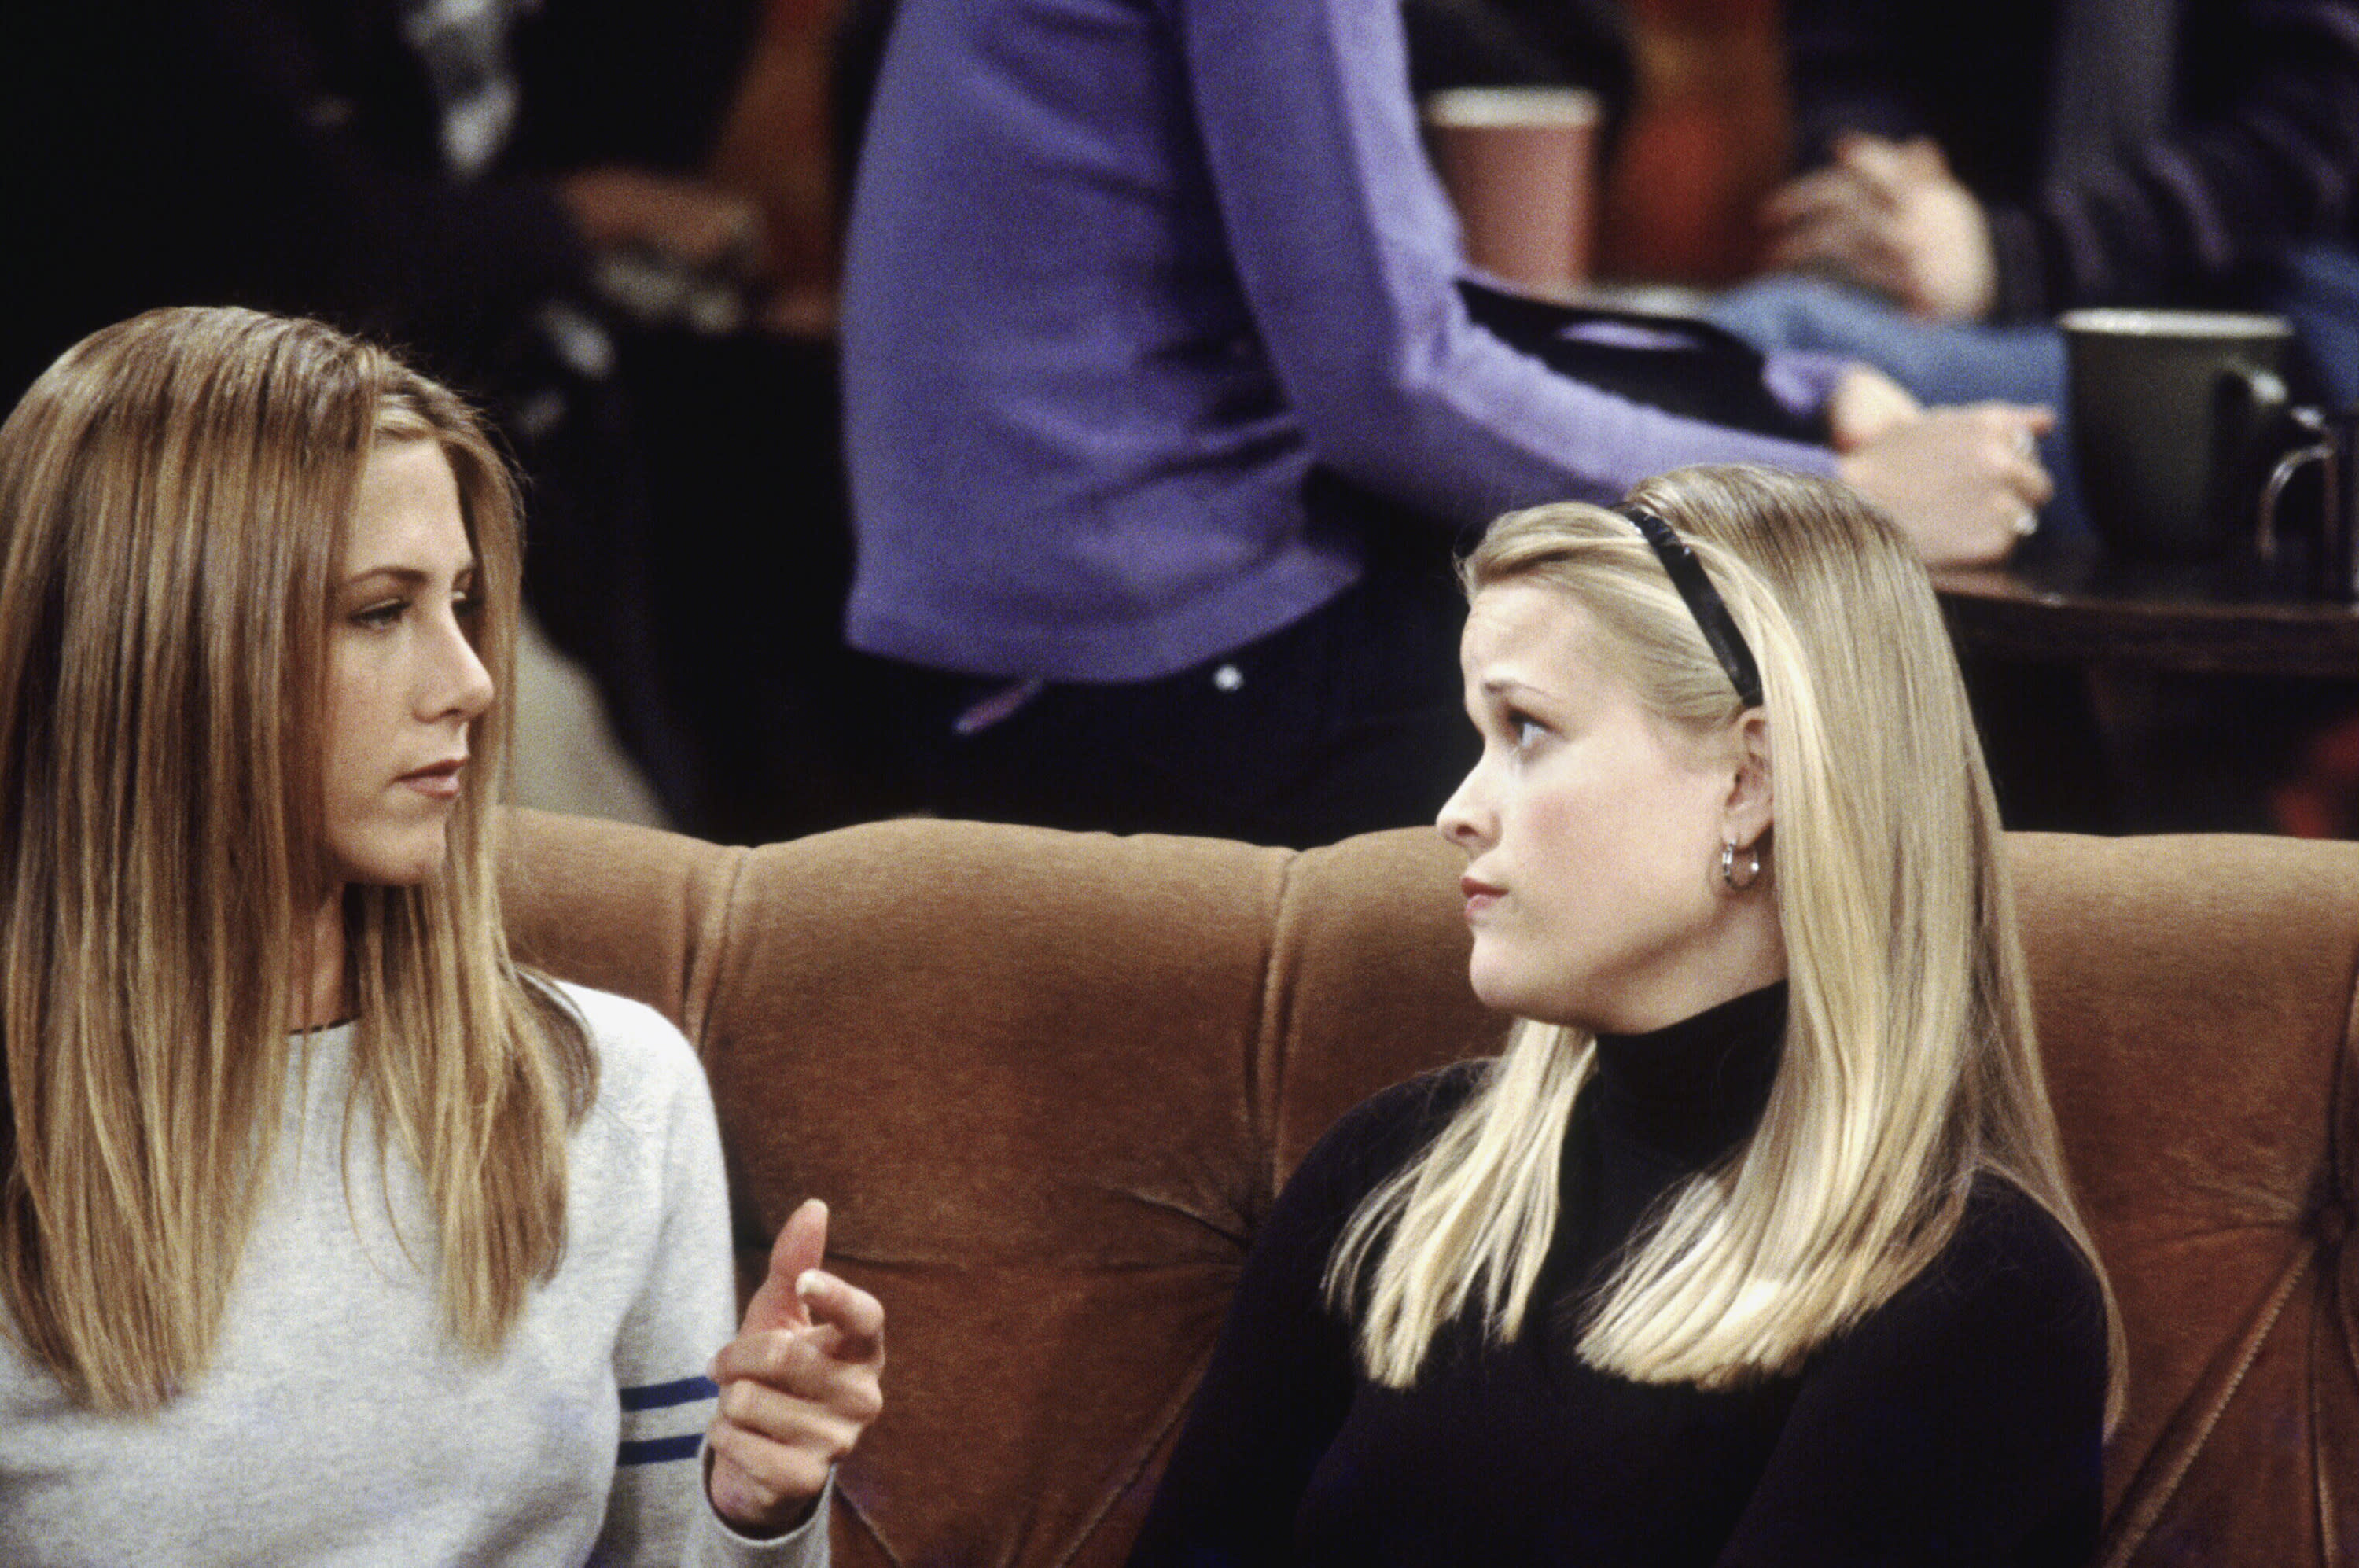 Reese Witherspoon says she bonded with Jennifer Aniston while nursing her baby on 'Friends' set